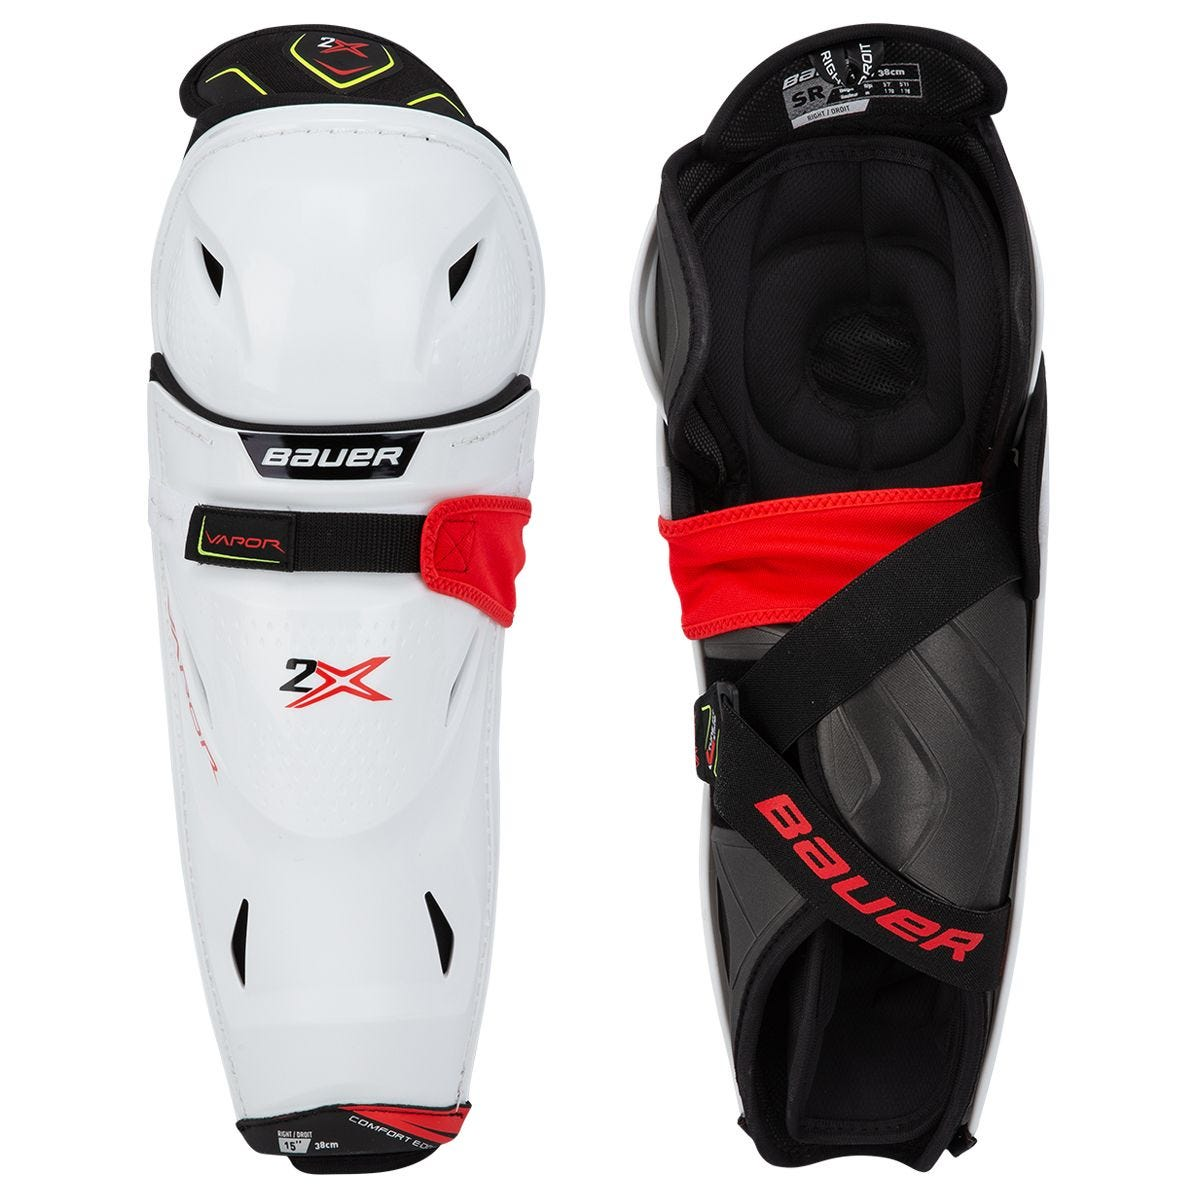 Bauer Vapor 2X Senior Hockey Shin Guards